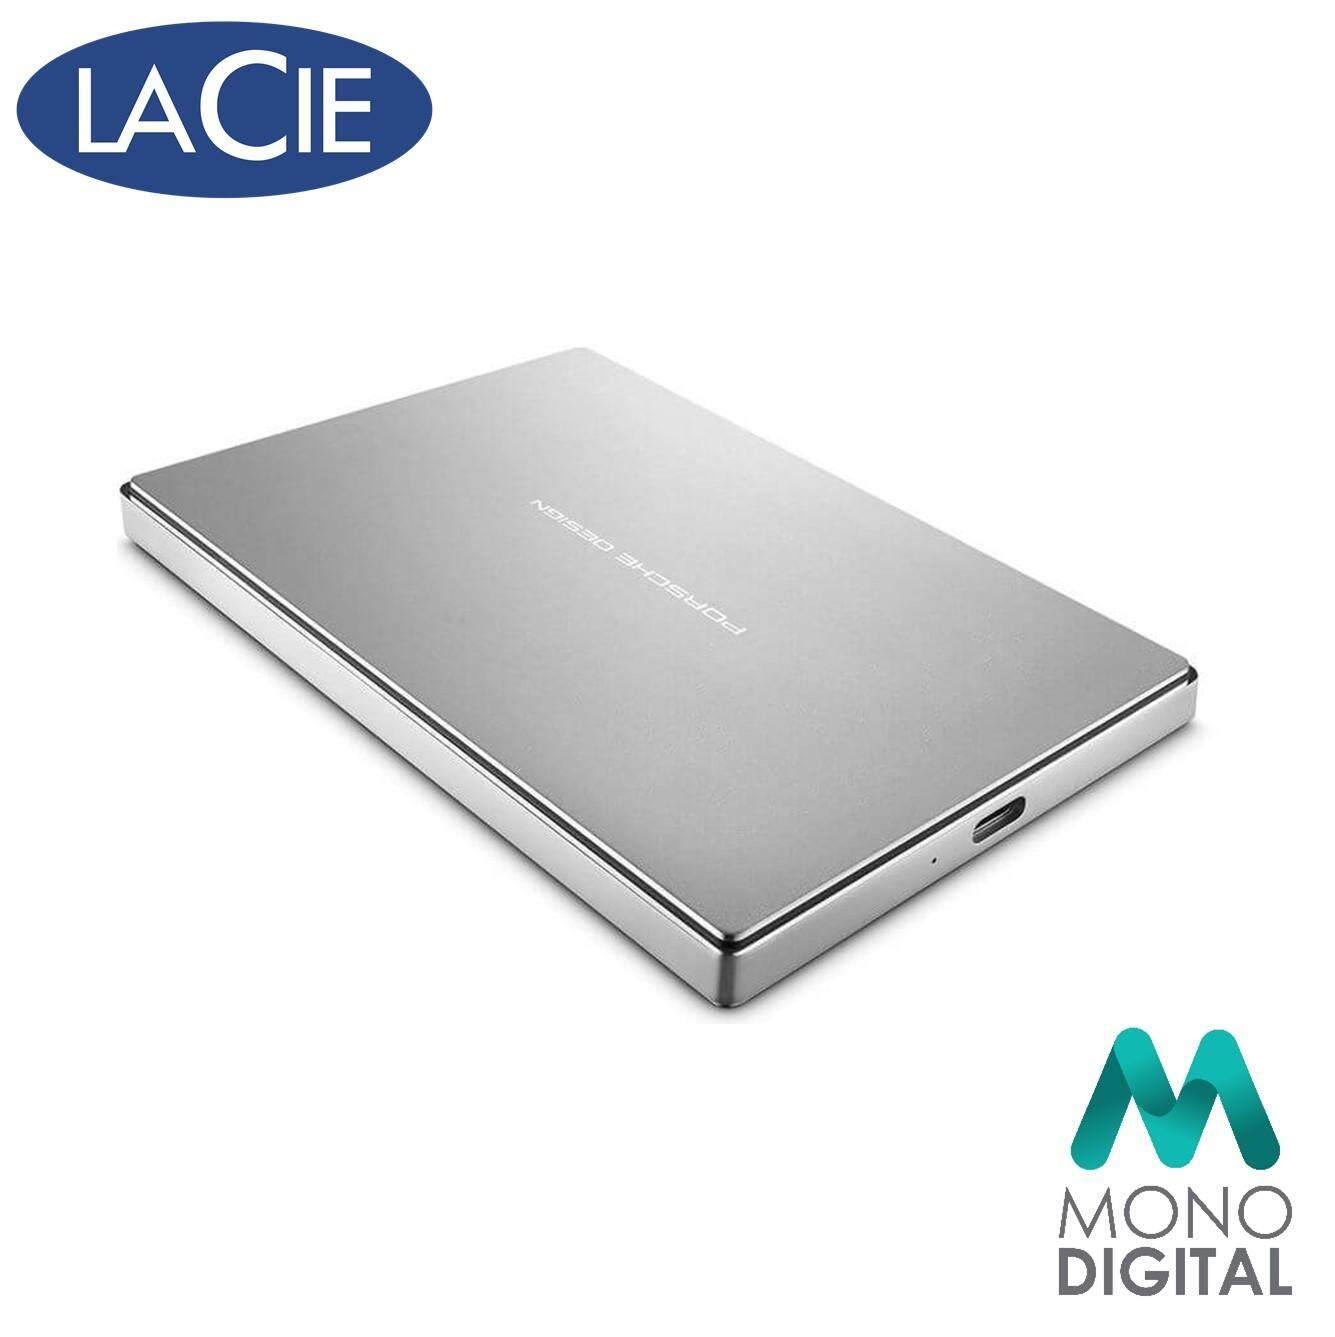 LaCie 5TB Porsche Type C 2.5 External Hard Disk (Silver) (STFD5000400) (LaCie Malaysia)